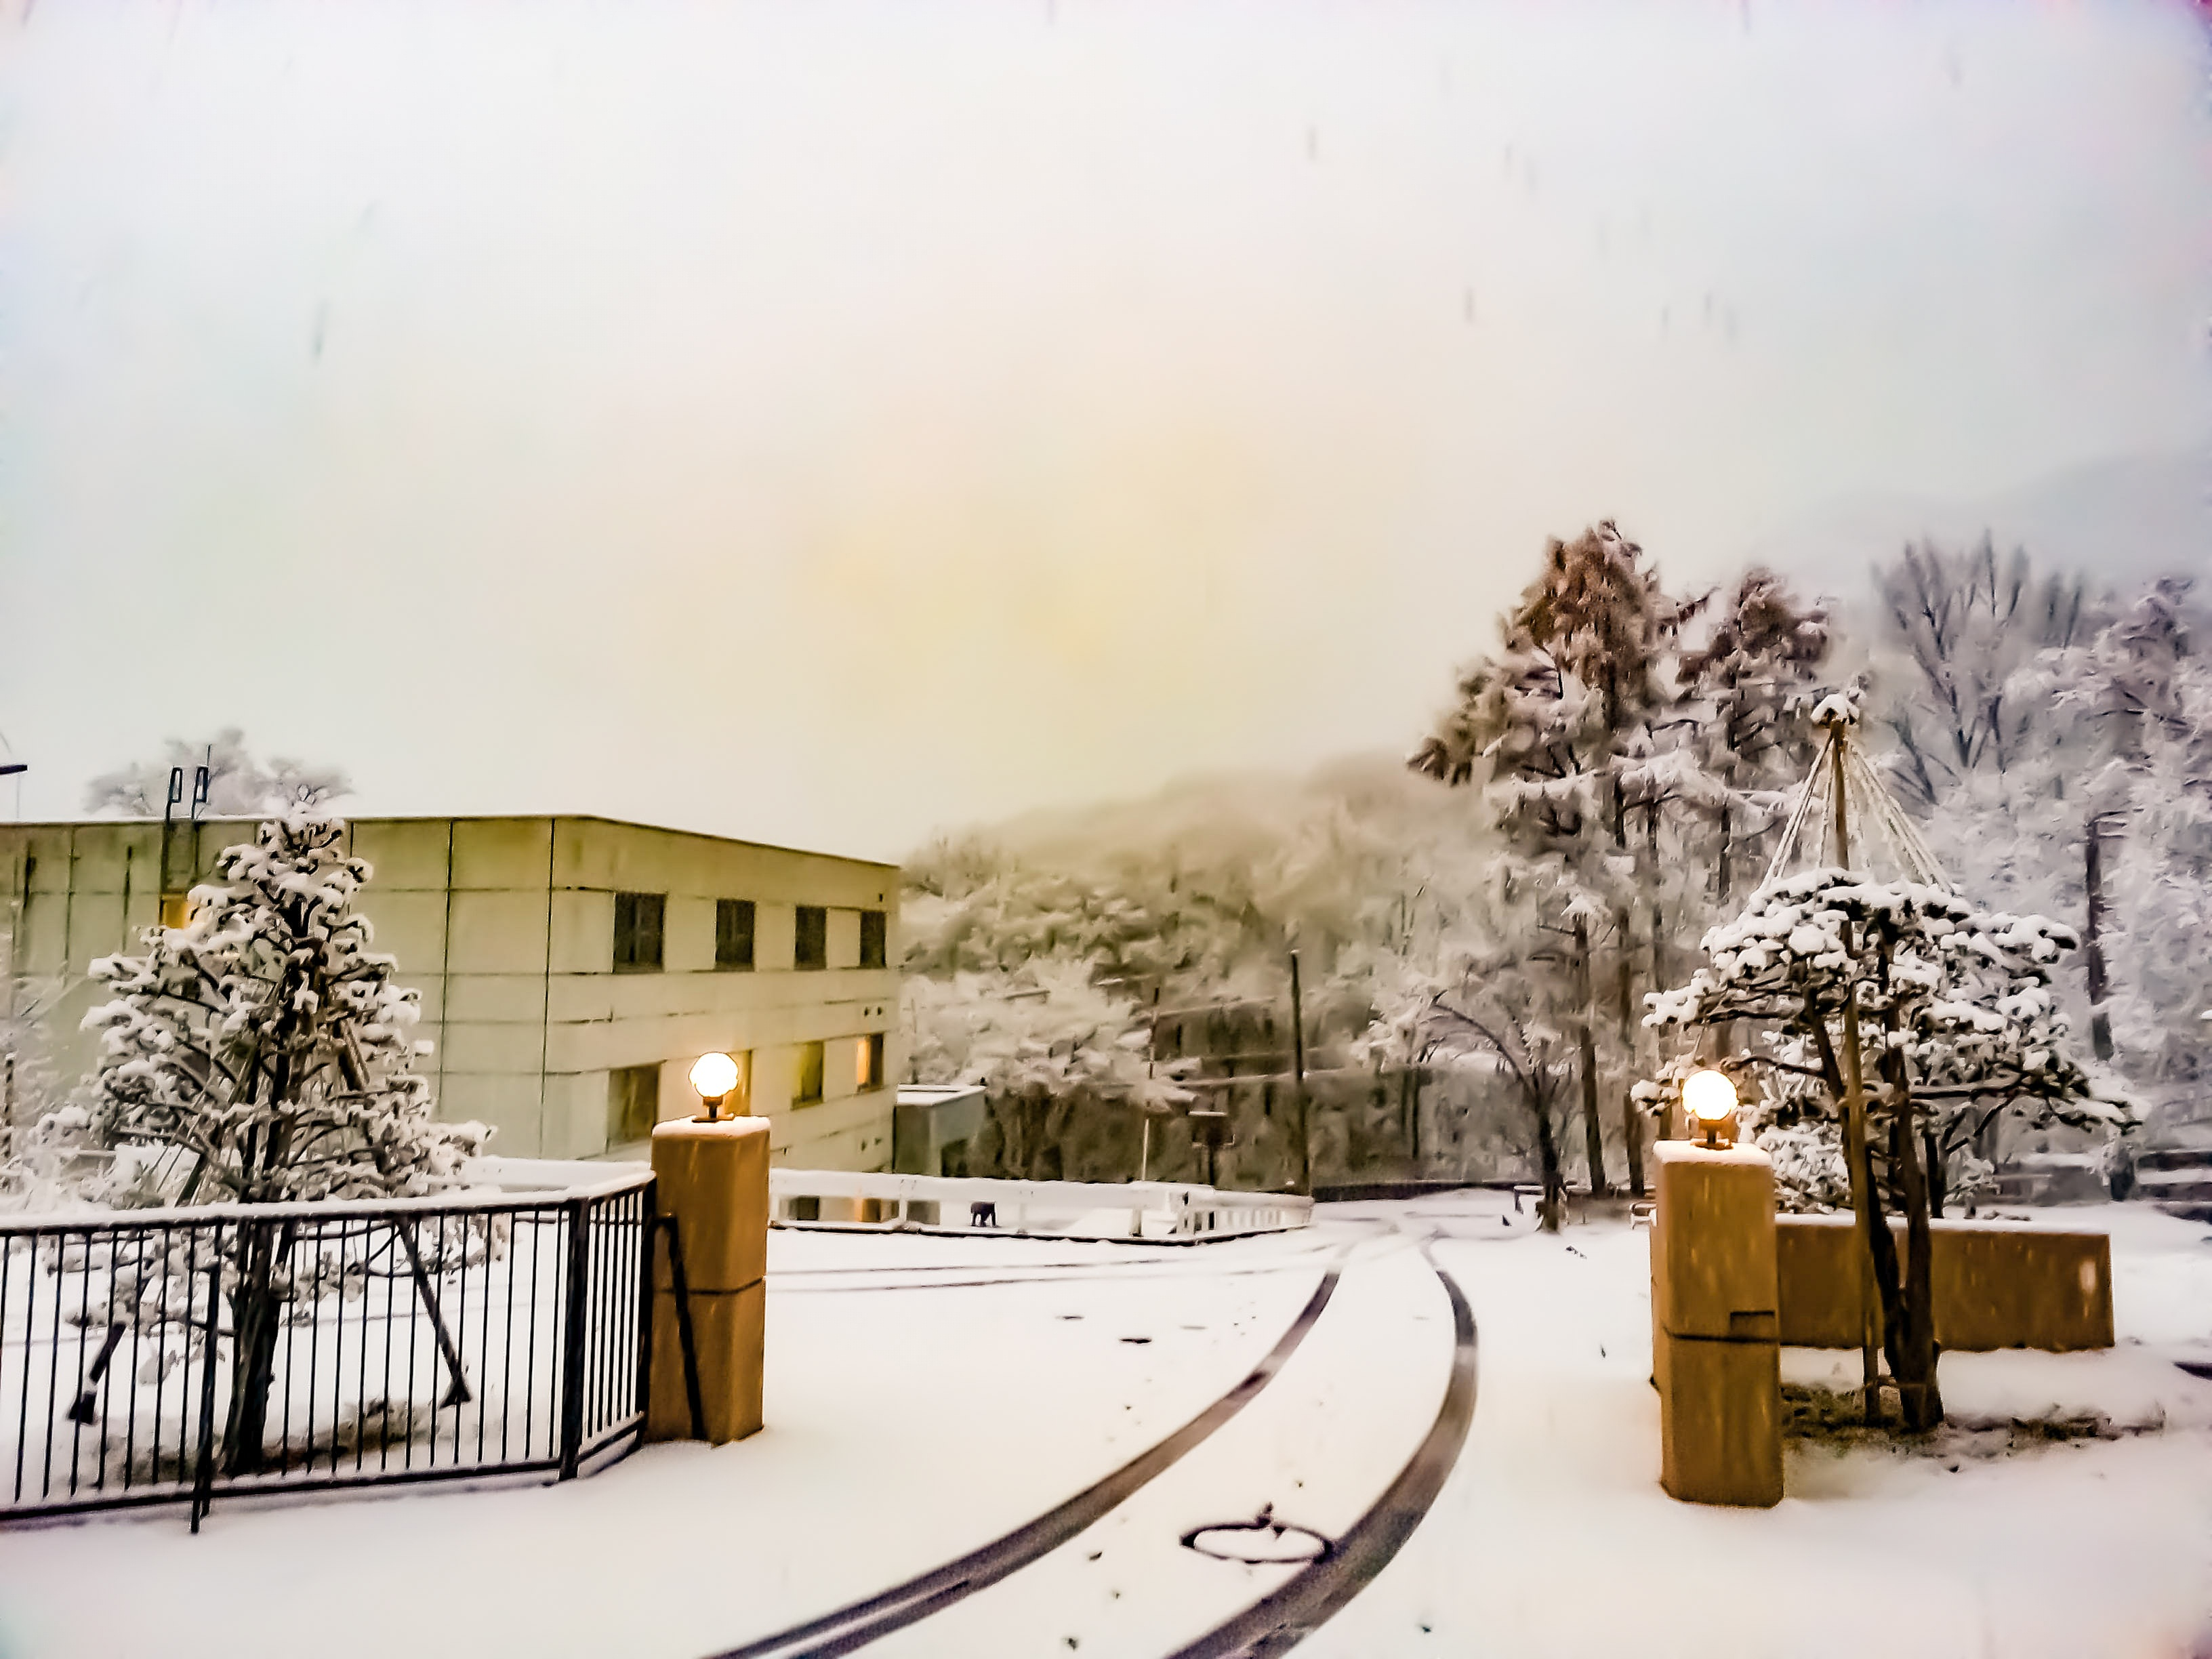 My Dorm in The Snow - Lan Pham - Fall Exchange Sem of AY 2017-2018